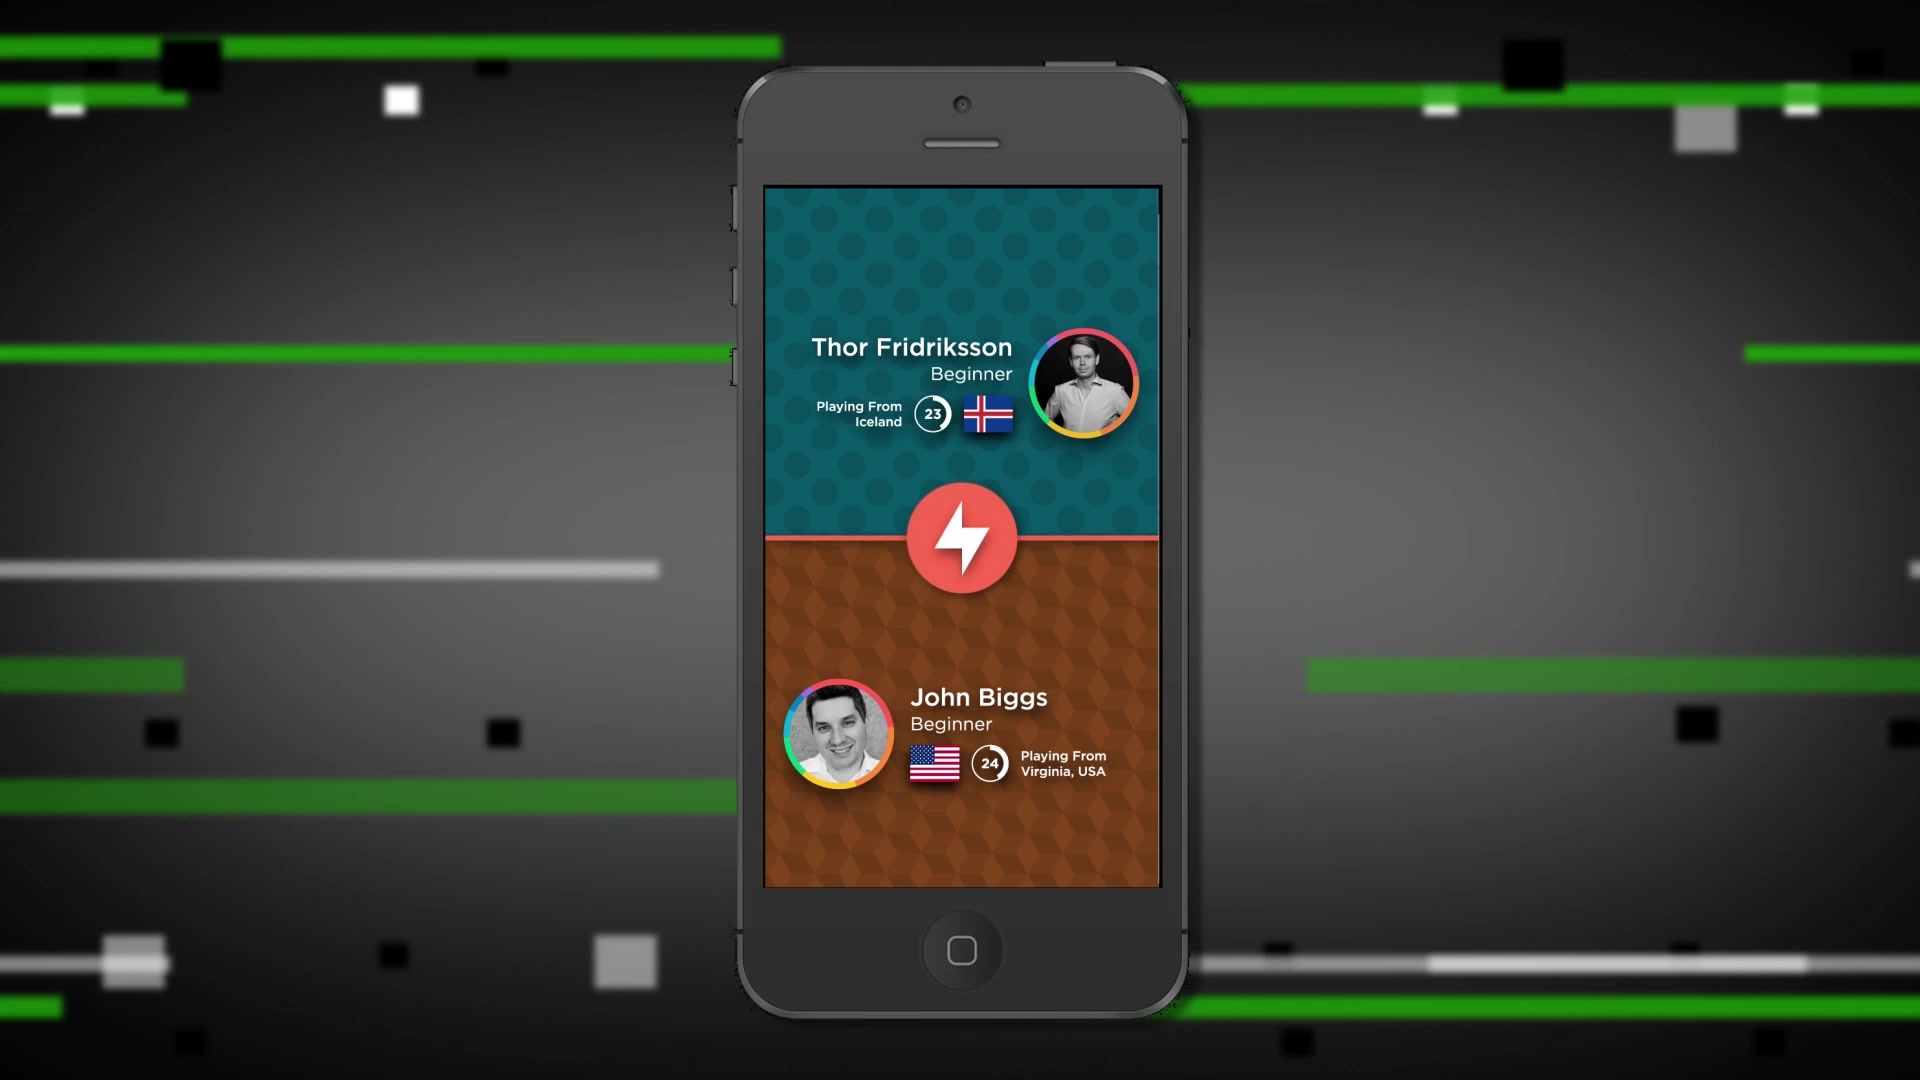 John Versus Thor in Newly Launched QuizUp